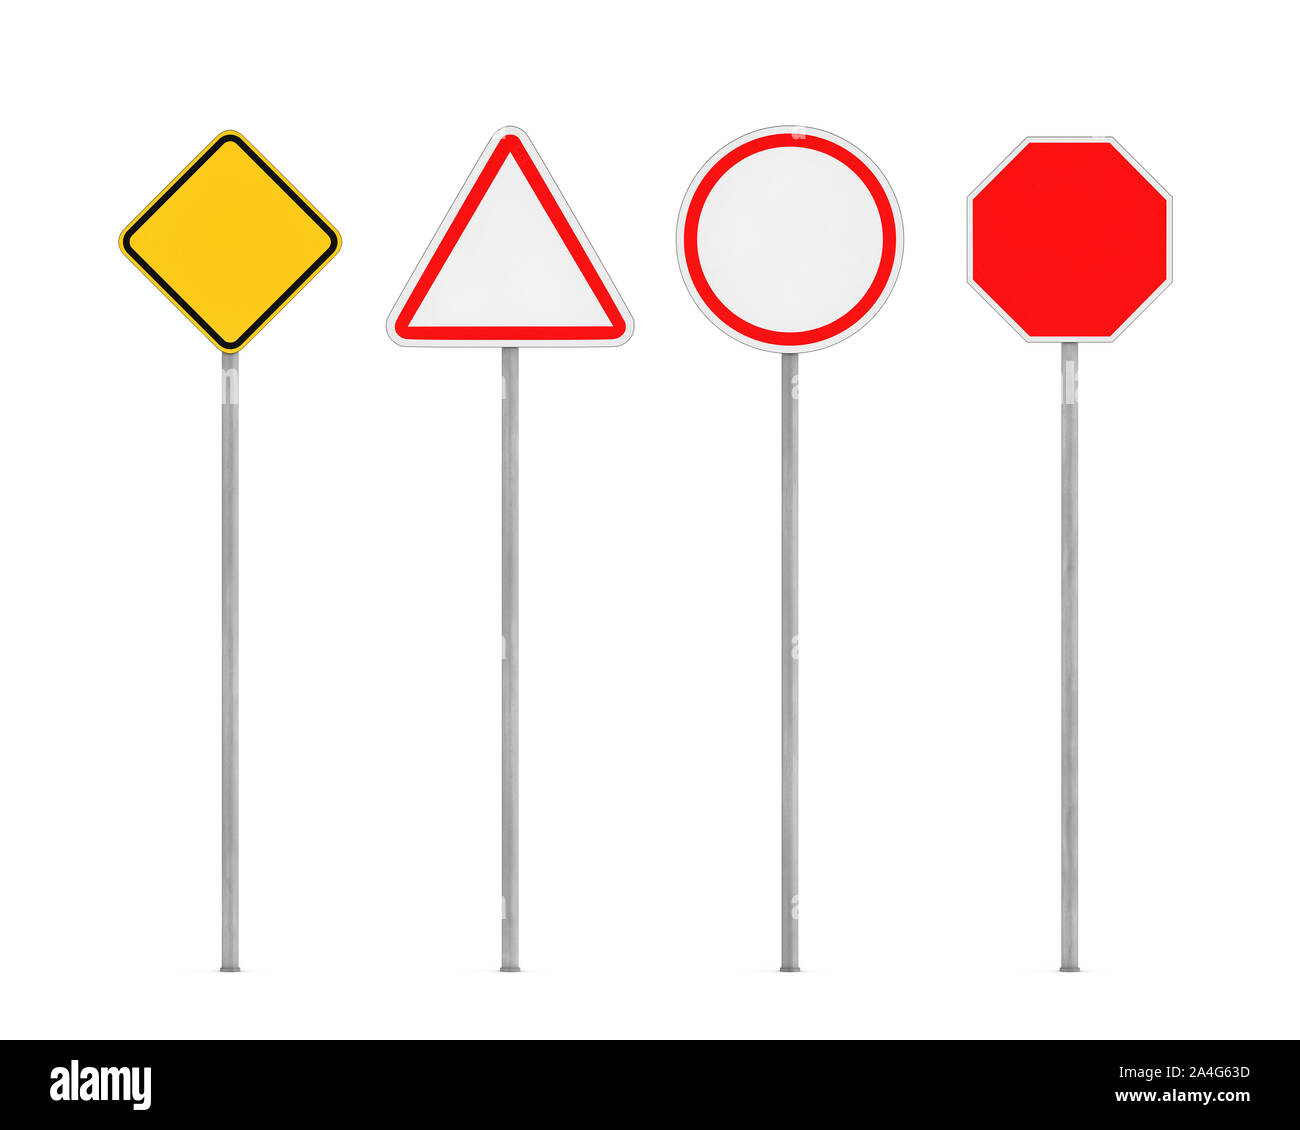 3d Rendering Of Four Blank Road Signs On Posts Isolated On The White Background Road Safety Traffic Regulations Warning Signs And Symbols Informat Stock Photo Alamy